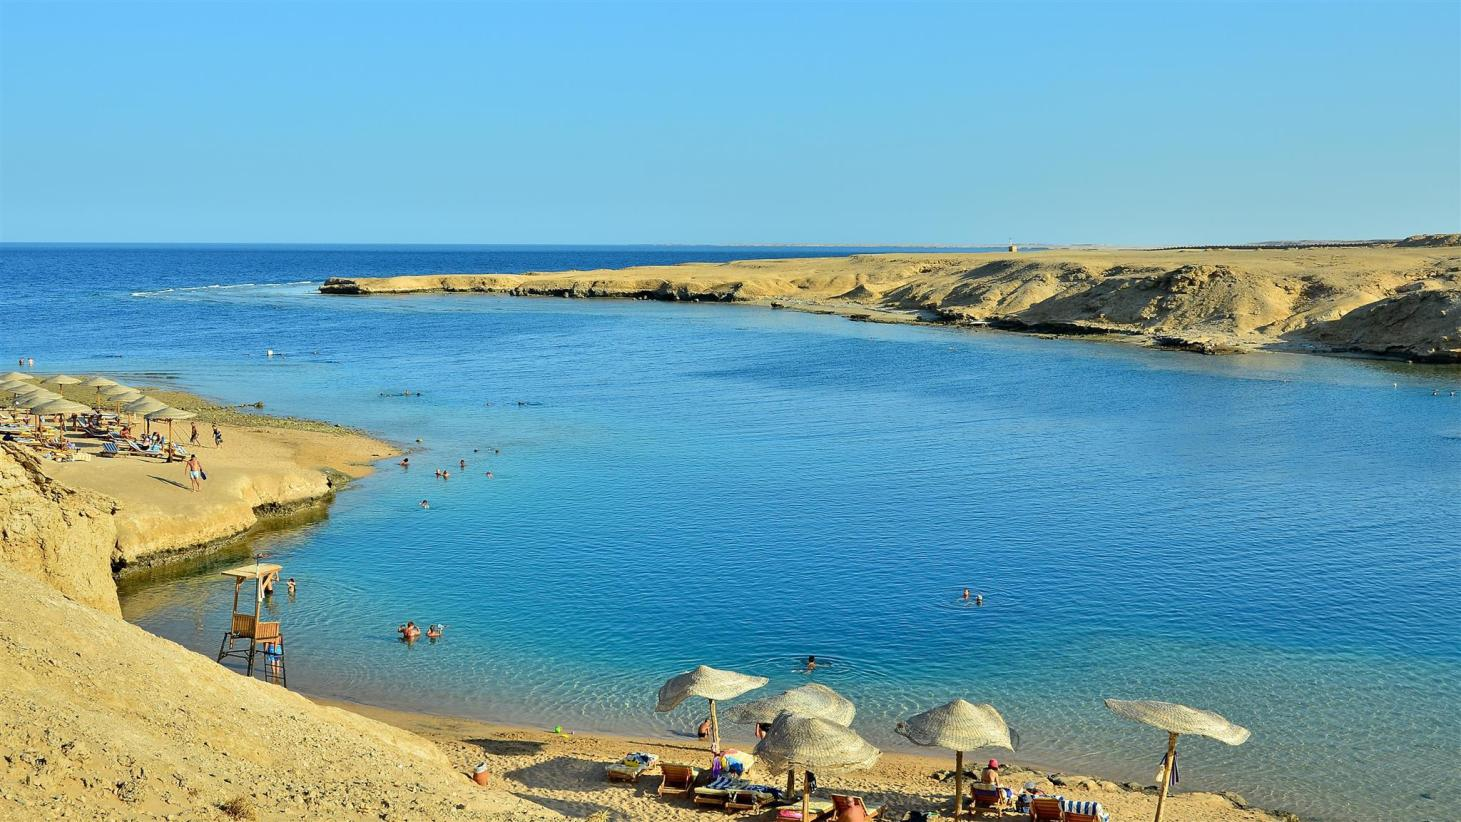 10 Best Hurghada Hotels Hd Photos Reviews Of Hotels In Hurghada